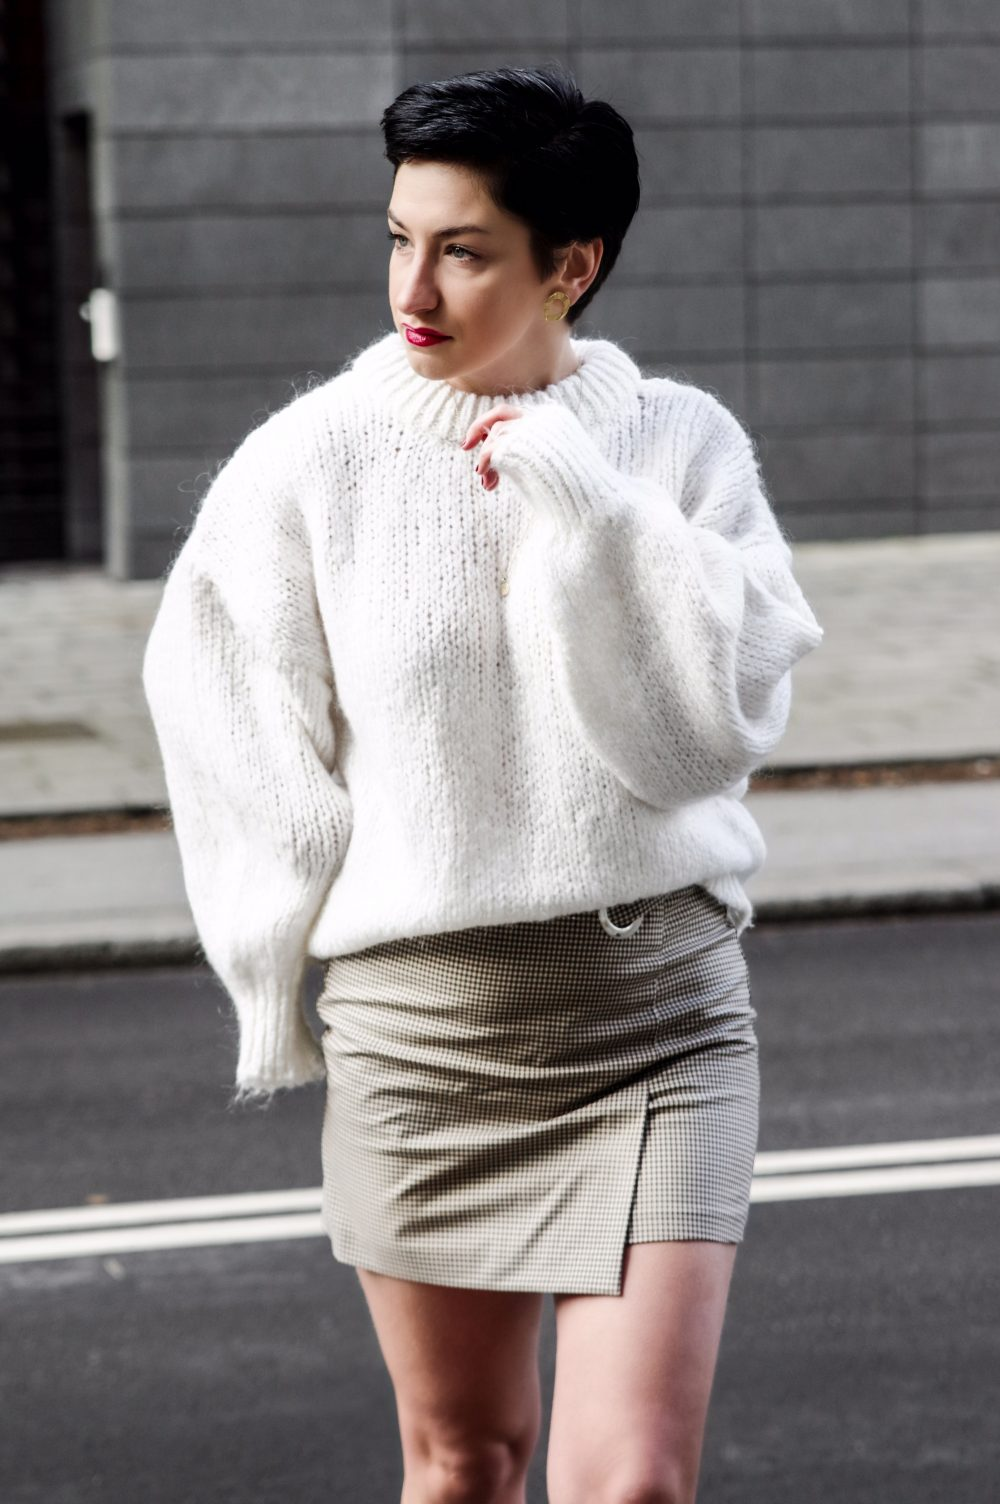 white zara sweater, sweater weather, wrap skirt, winter look, spring outfit